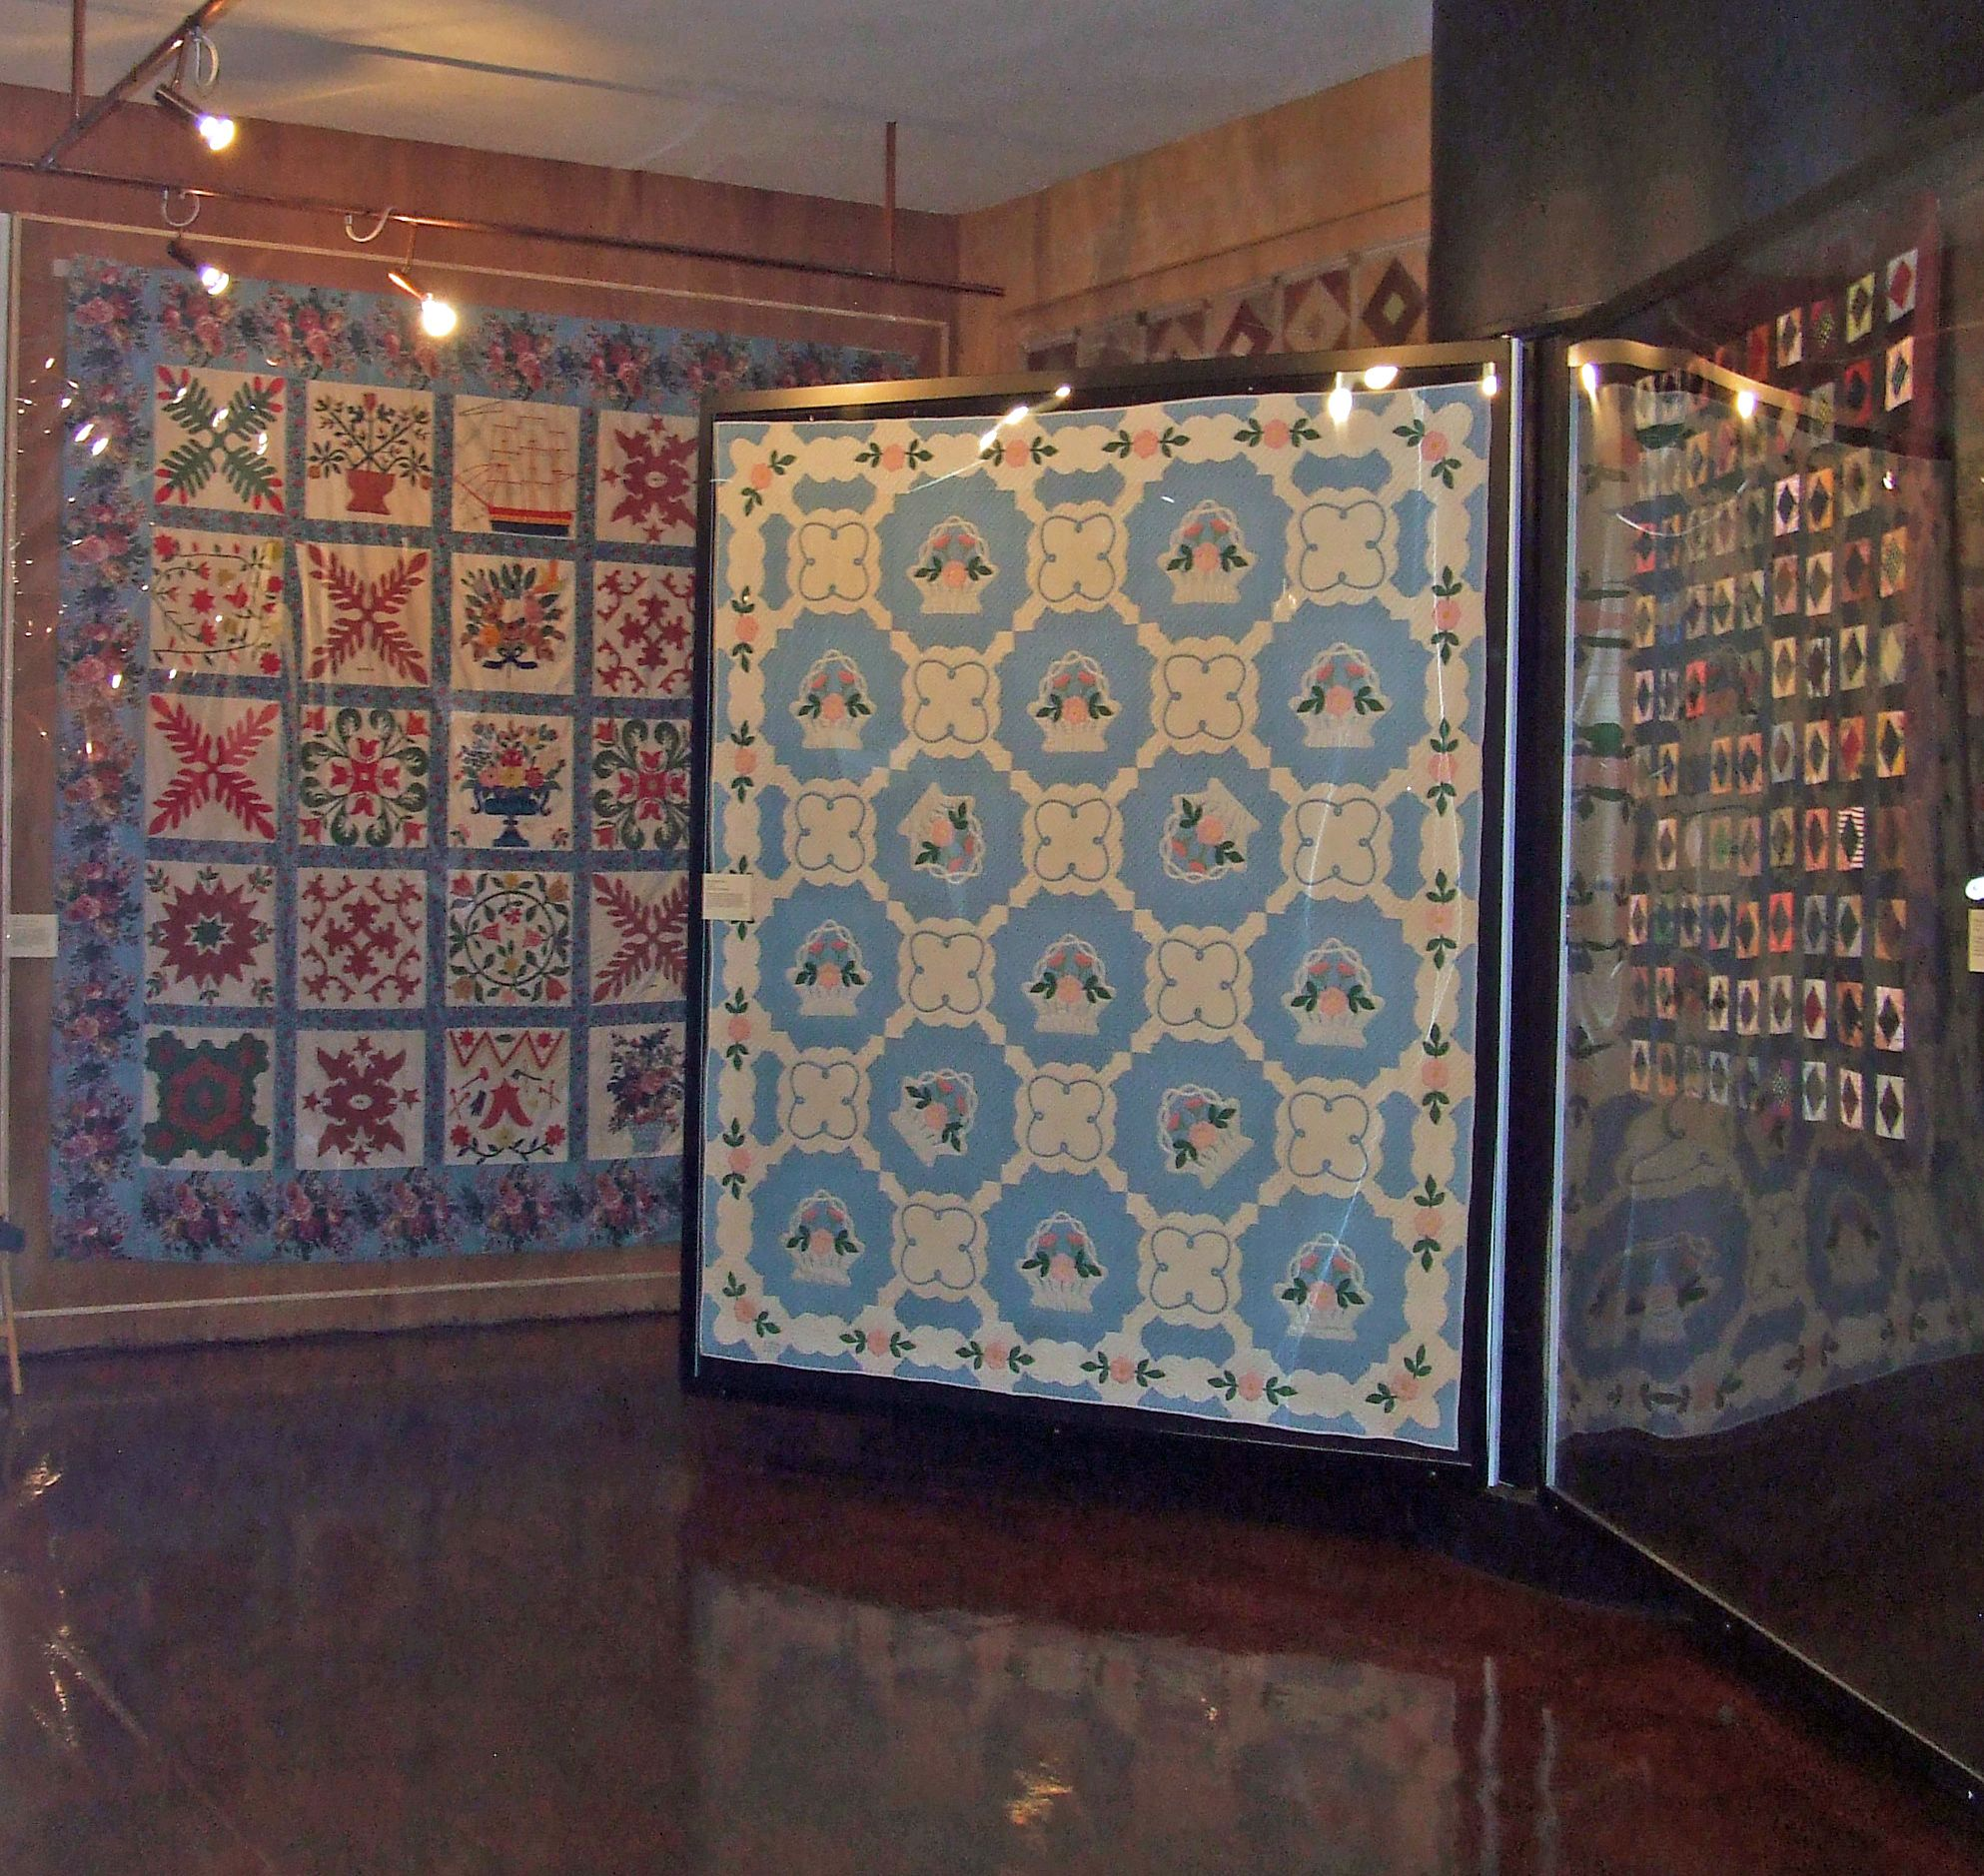 Baltimore album quilt (on wall) in the textile room American Museum, Bath UK